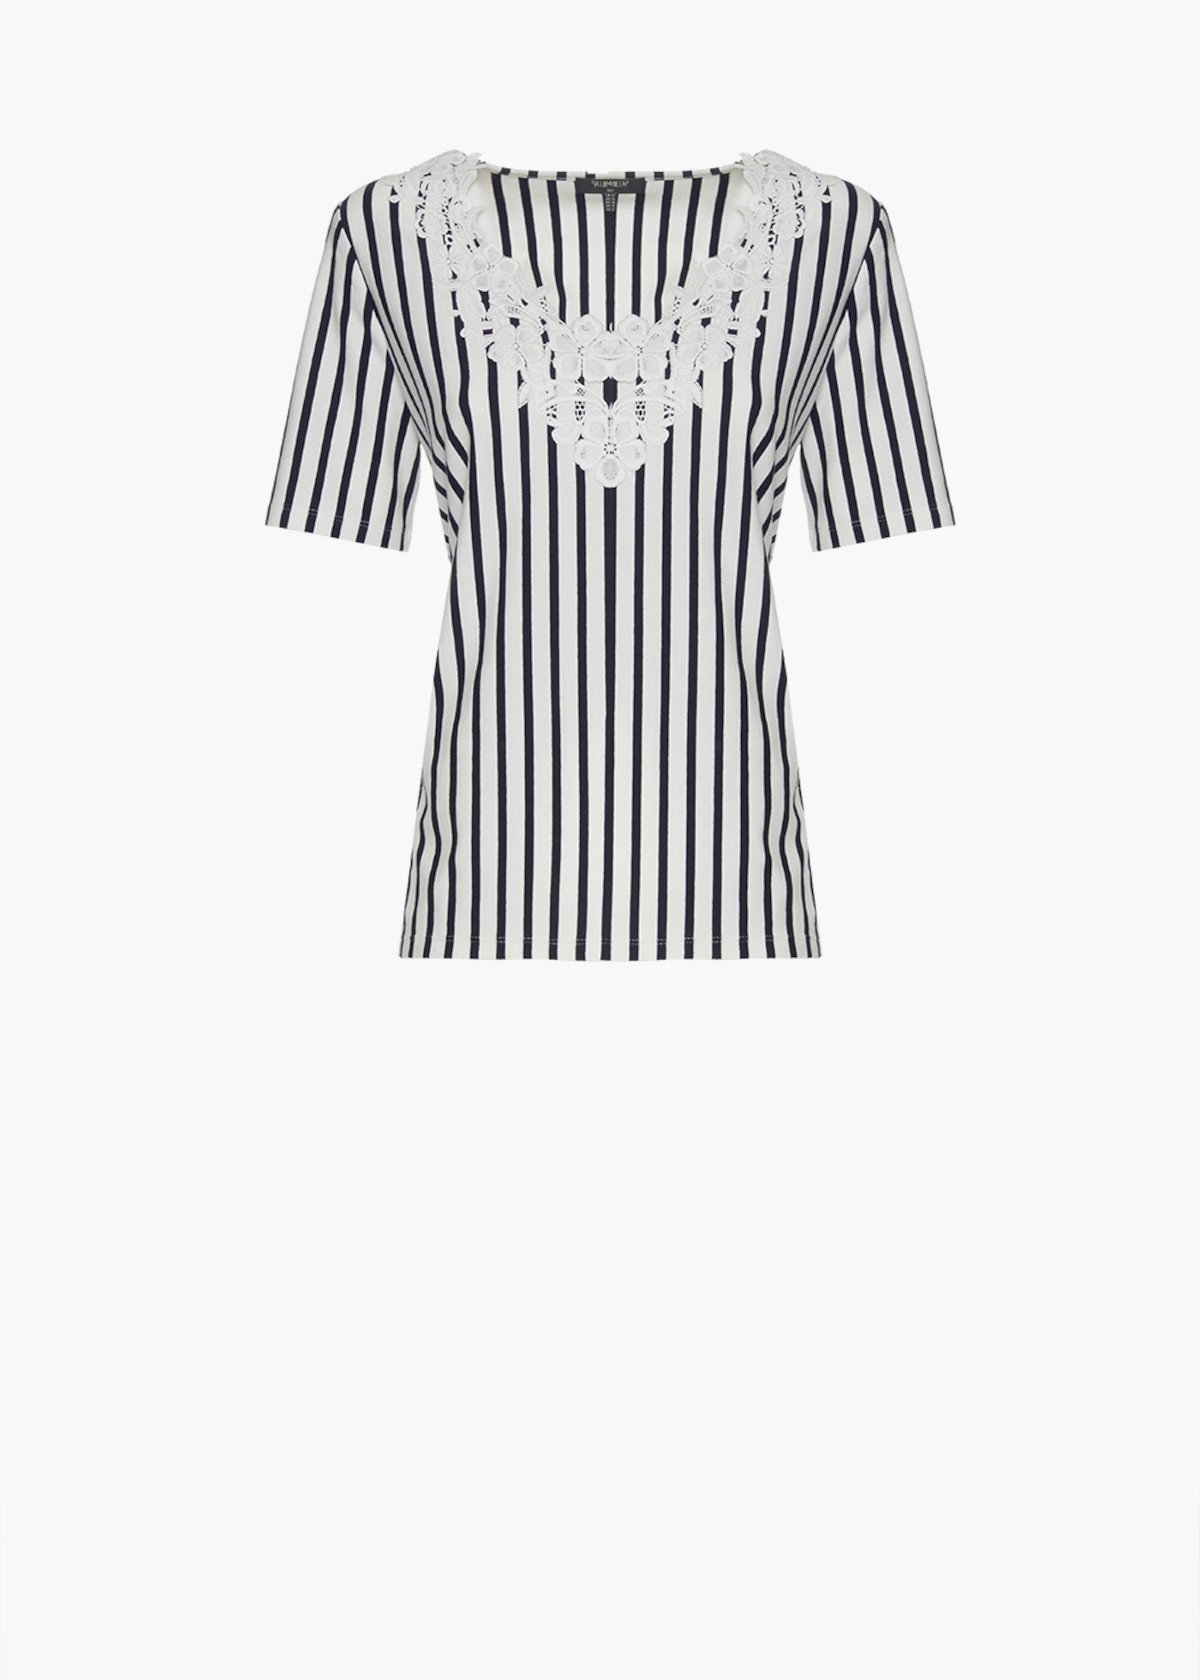 Shiny stripes fantasy t-shirt with flower embroidery at the neckline - Blue / White Stripes - Woman - Category image